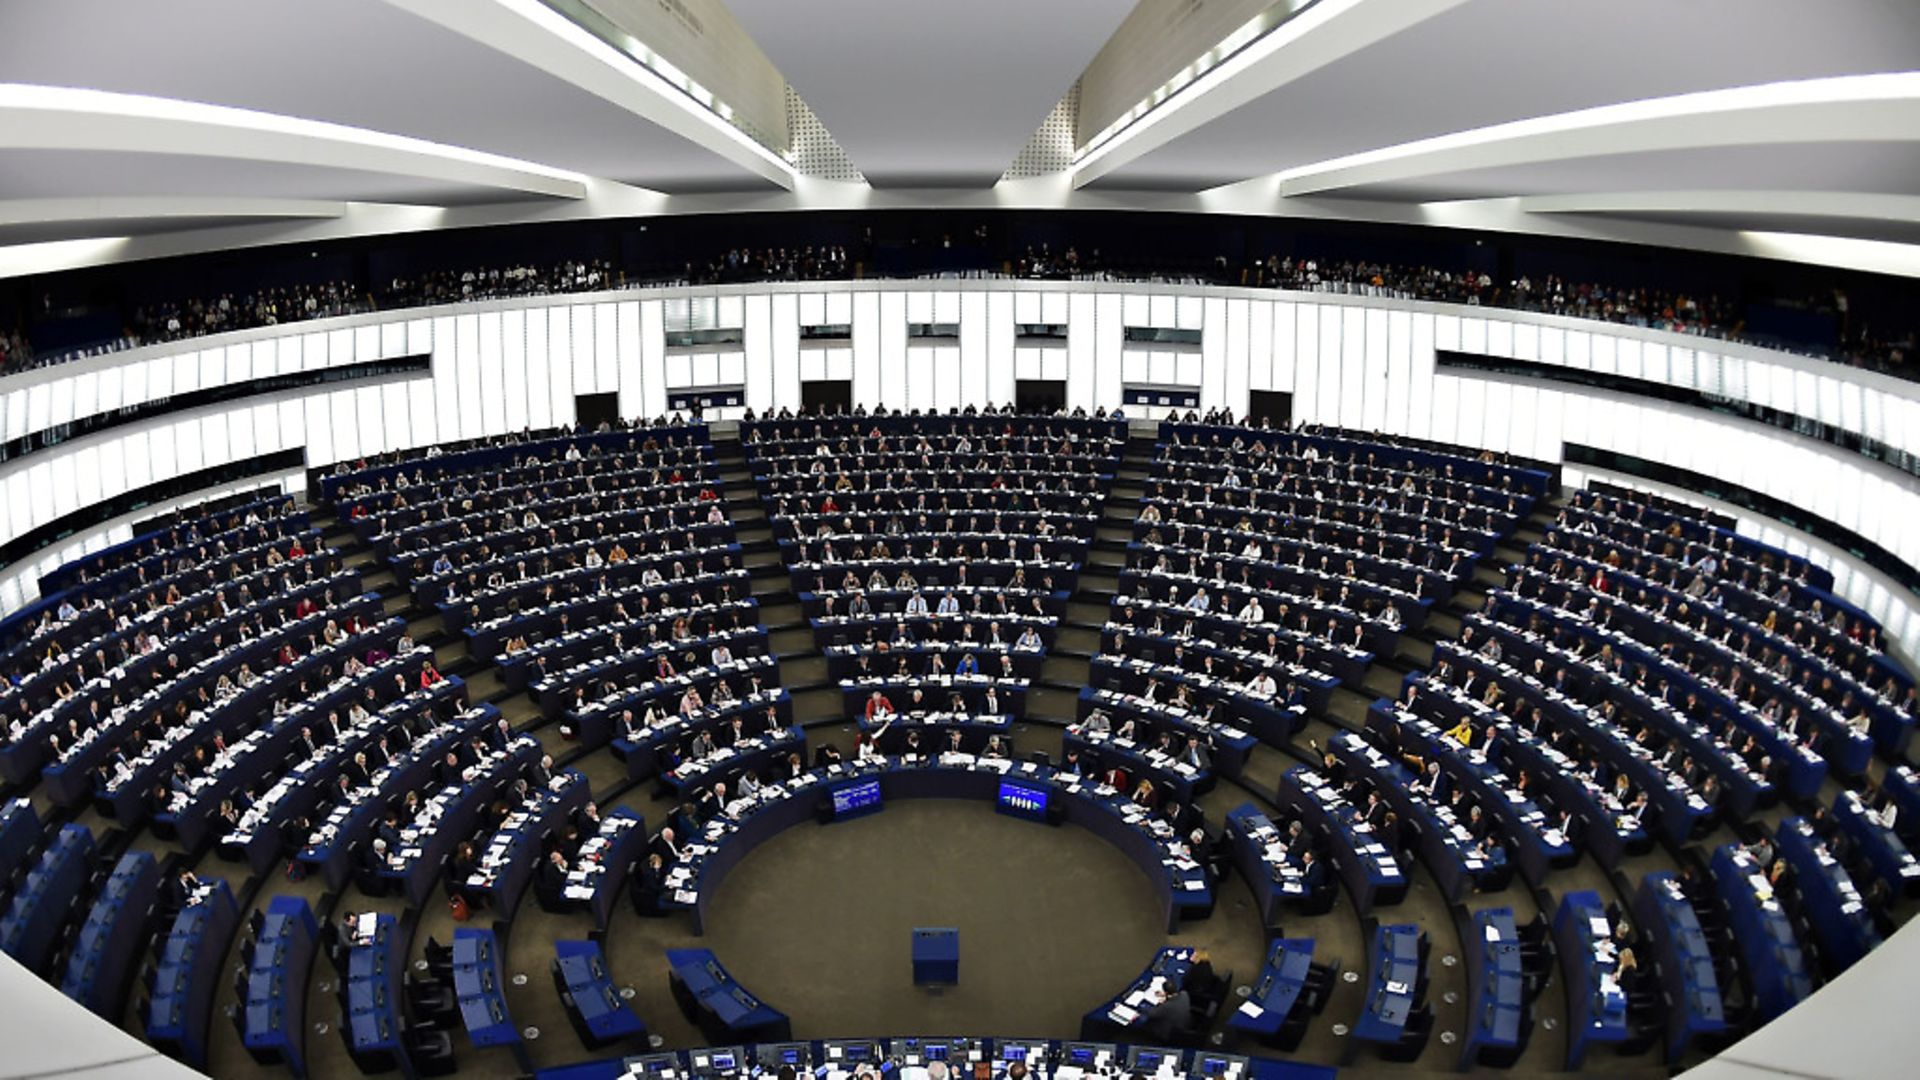 Members of the European Parliament take part in a voting session during a plenary session at the European Parliament in Strasbourg, eastern France. Photo: FREDERICK FLORIN/AFP/Getty Images - Credit: AFP/Getty Images